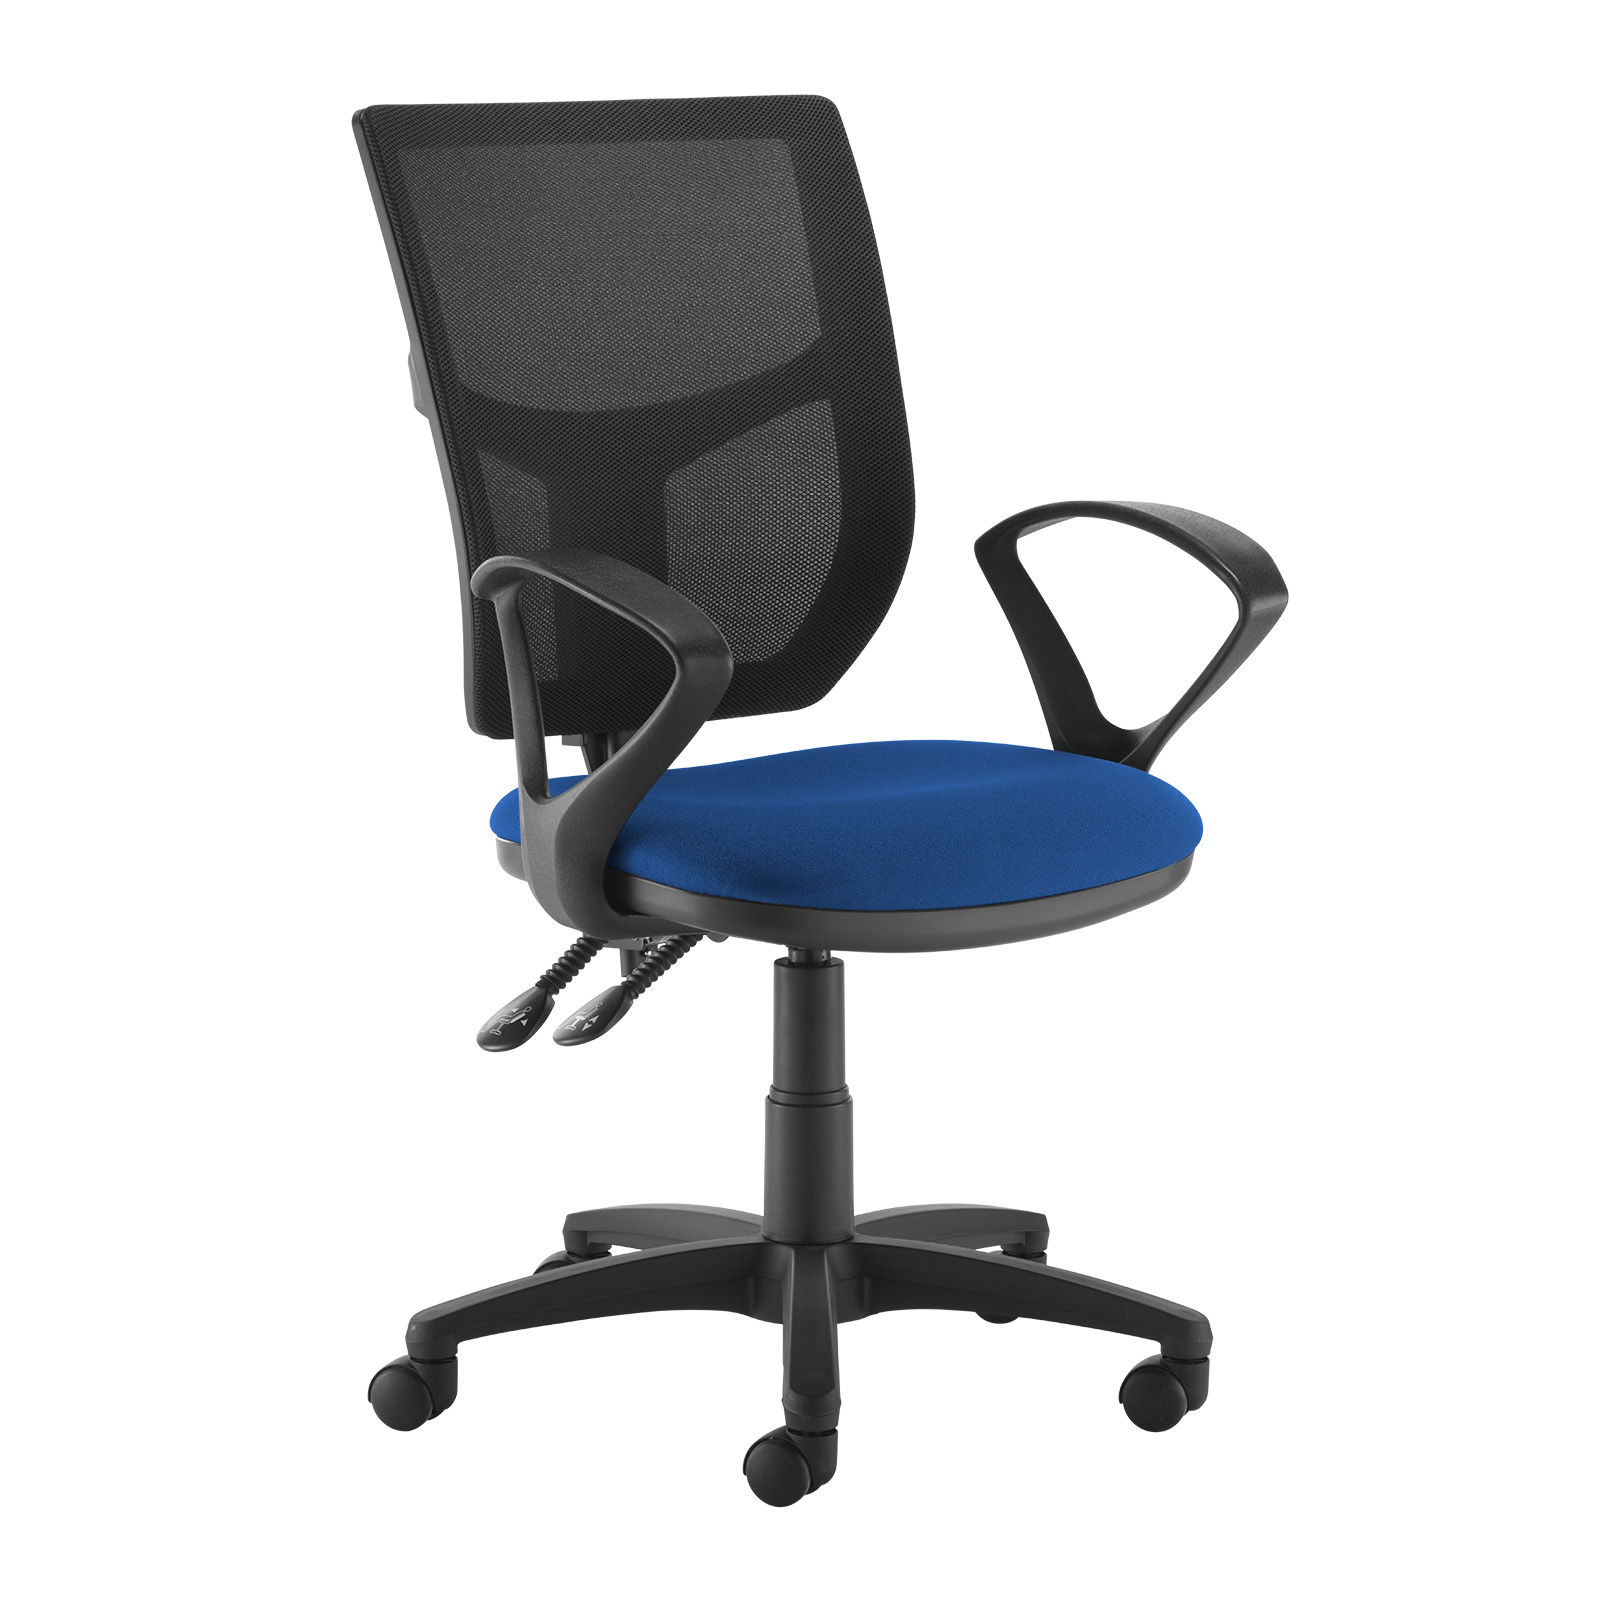 Desk Chairs Altino 2 lever high mesh back operators chair with fixed arms - blue